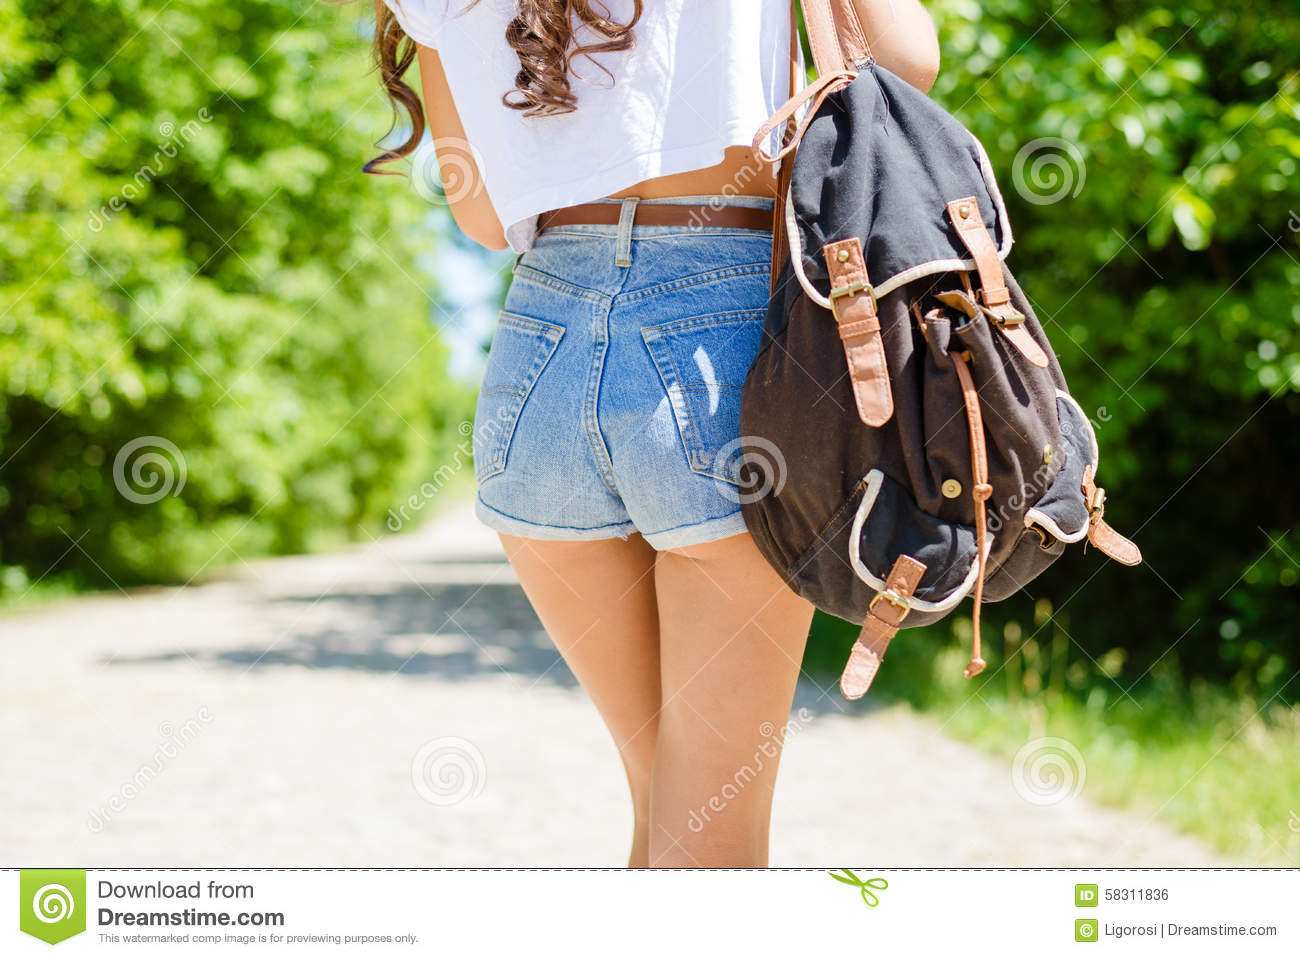 closeup on sexi female butts in jeans shorts with stock photo